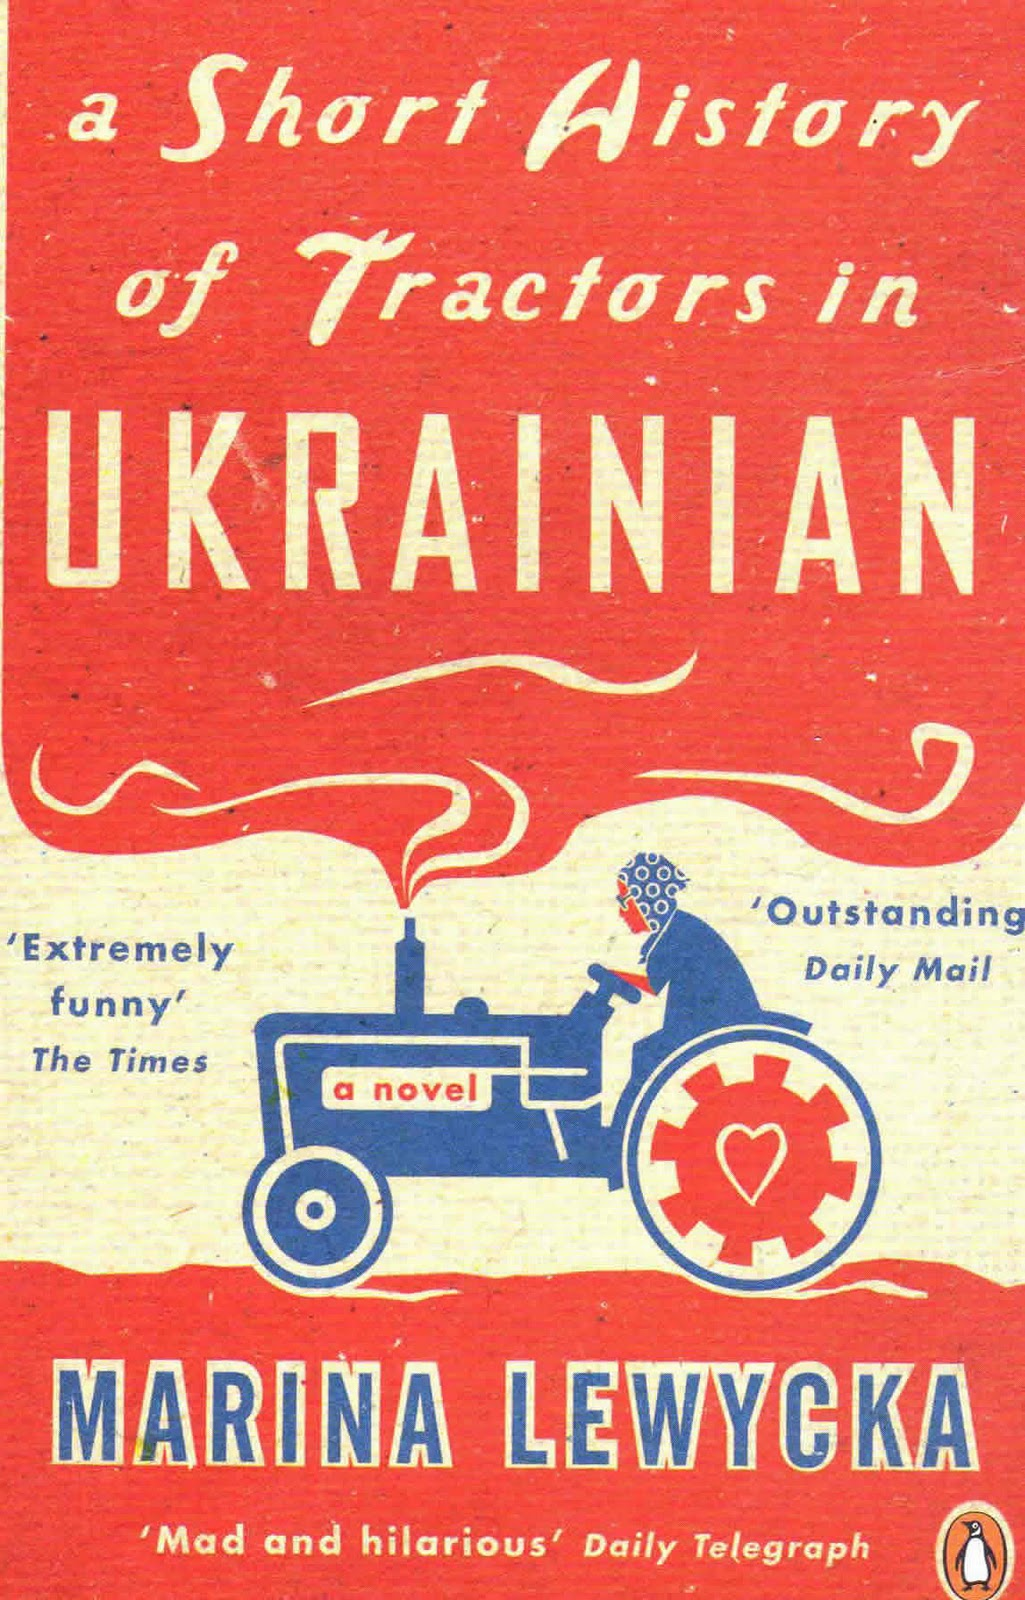 History-of-Tractors-Cover.jpg